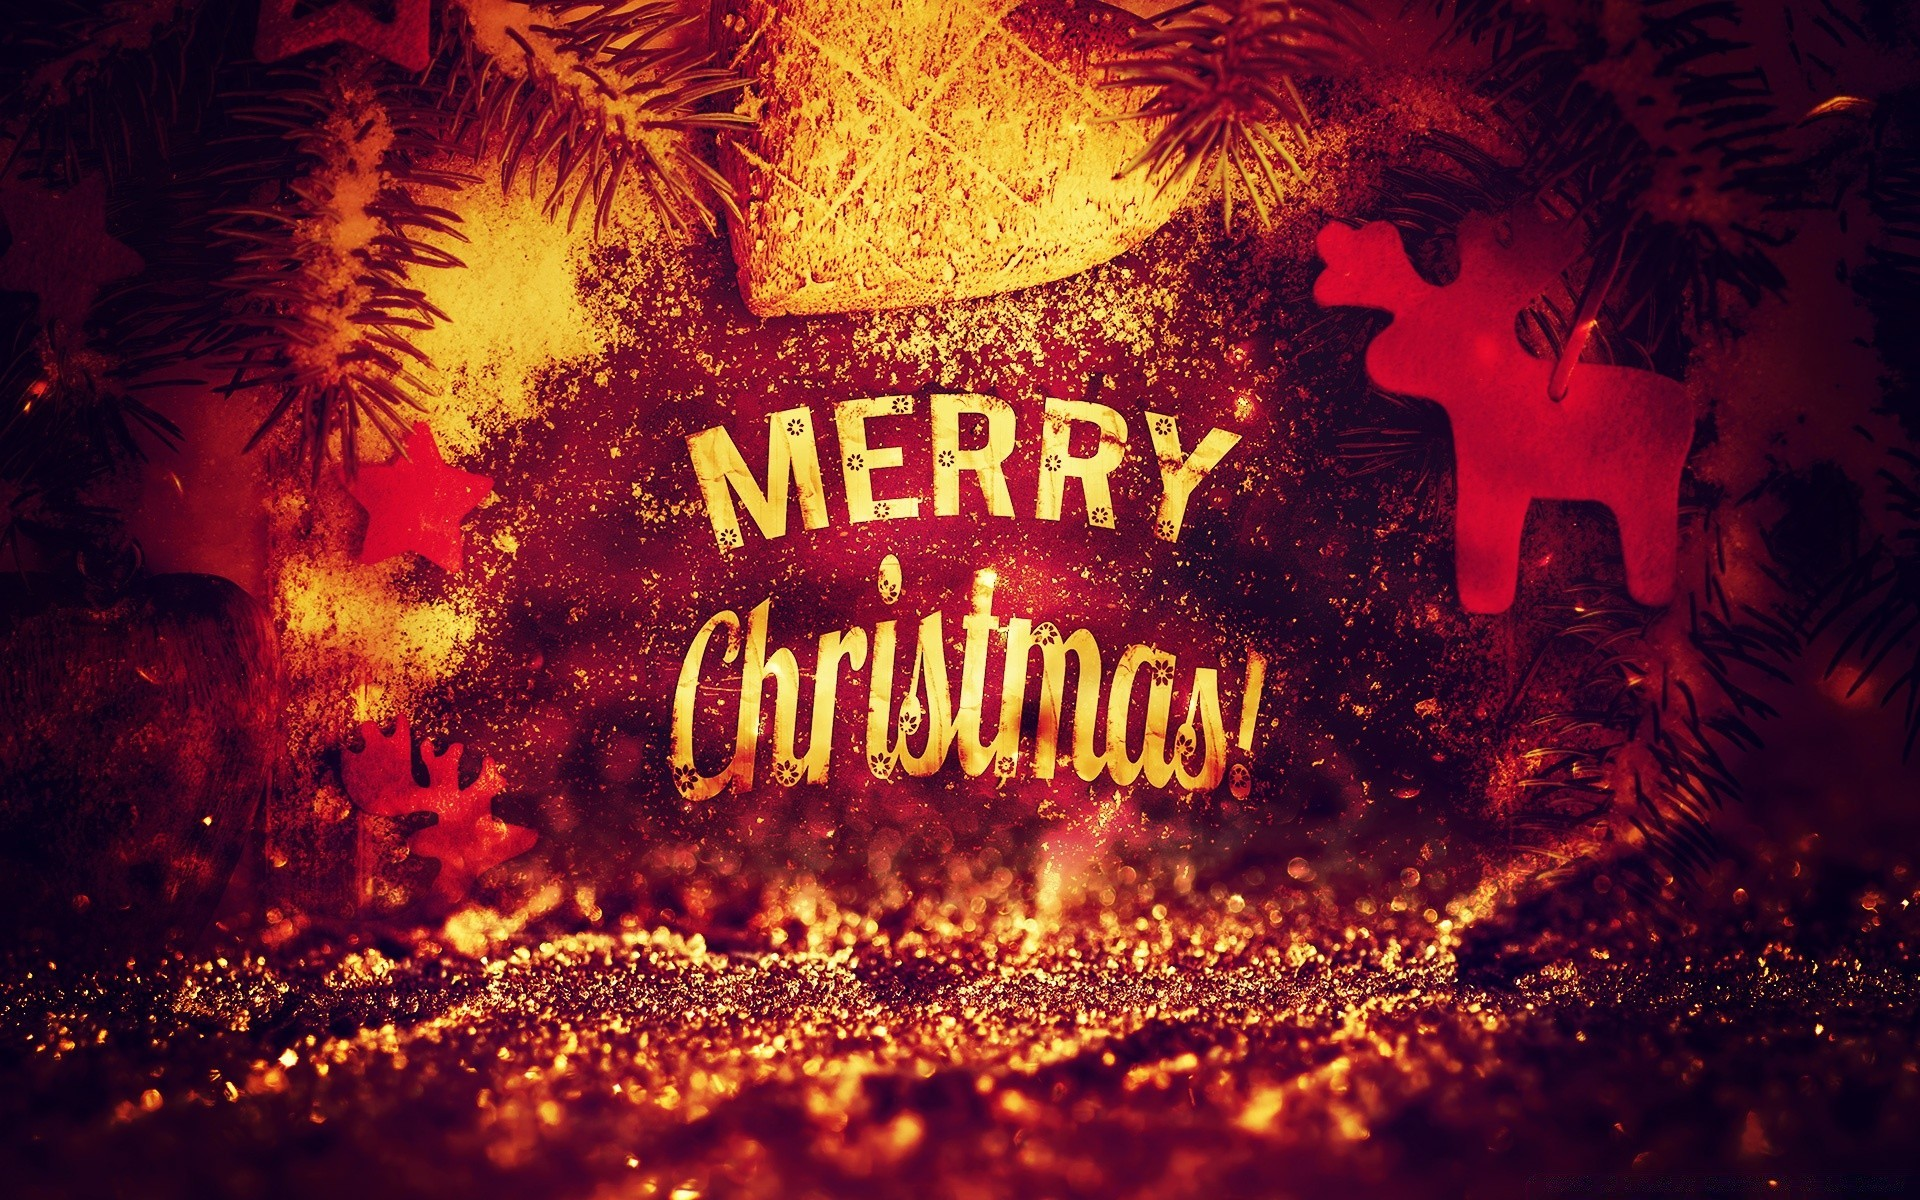 Merry Christmas 2014 by PimpYourScreen. Android wallpapers for free.